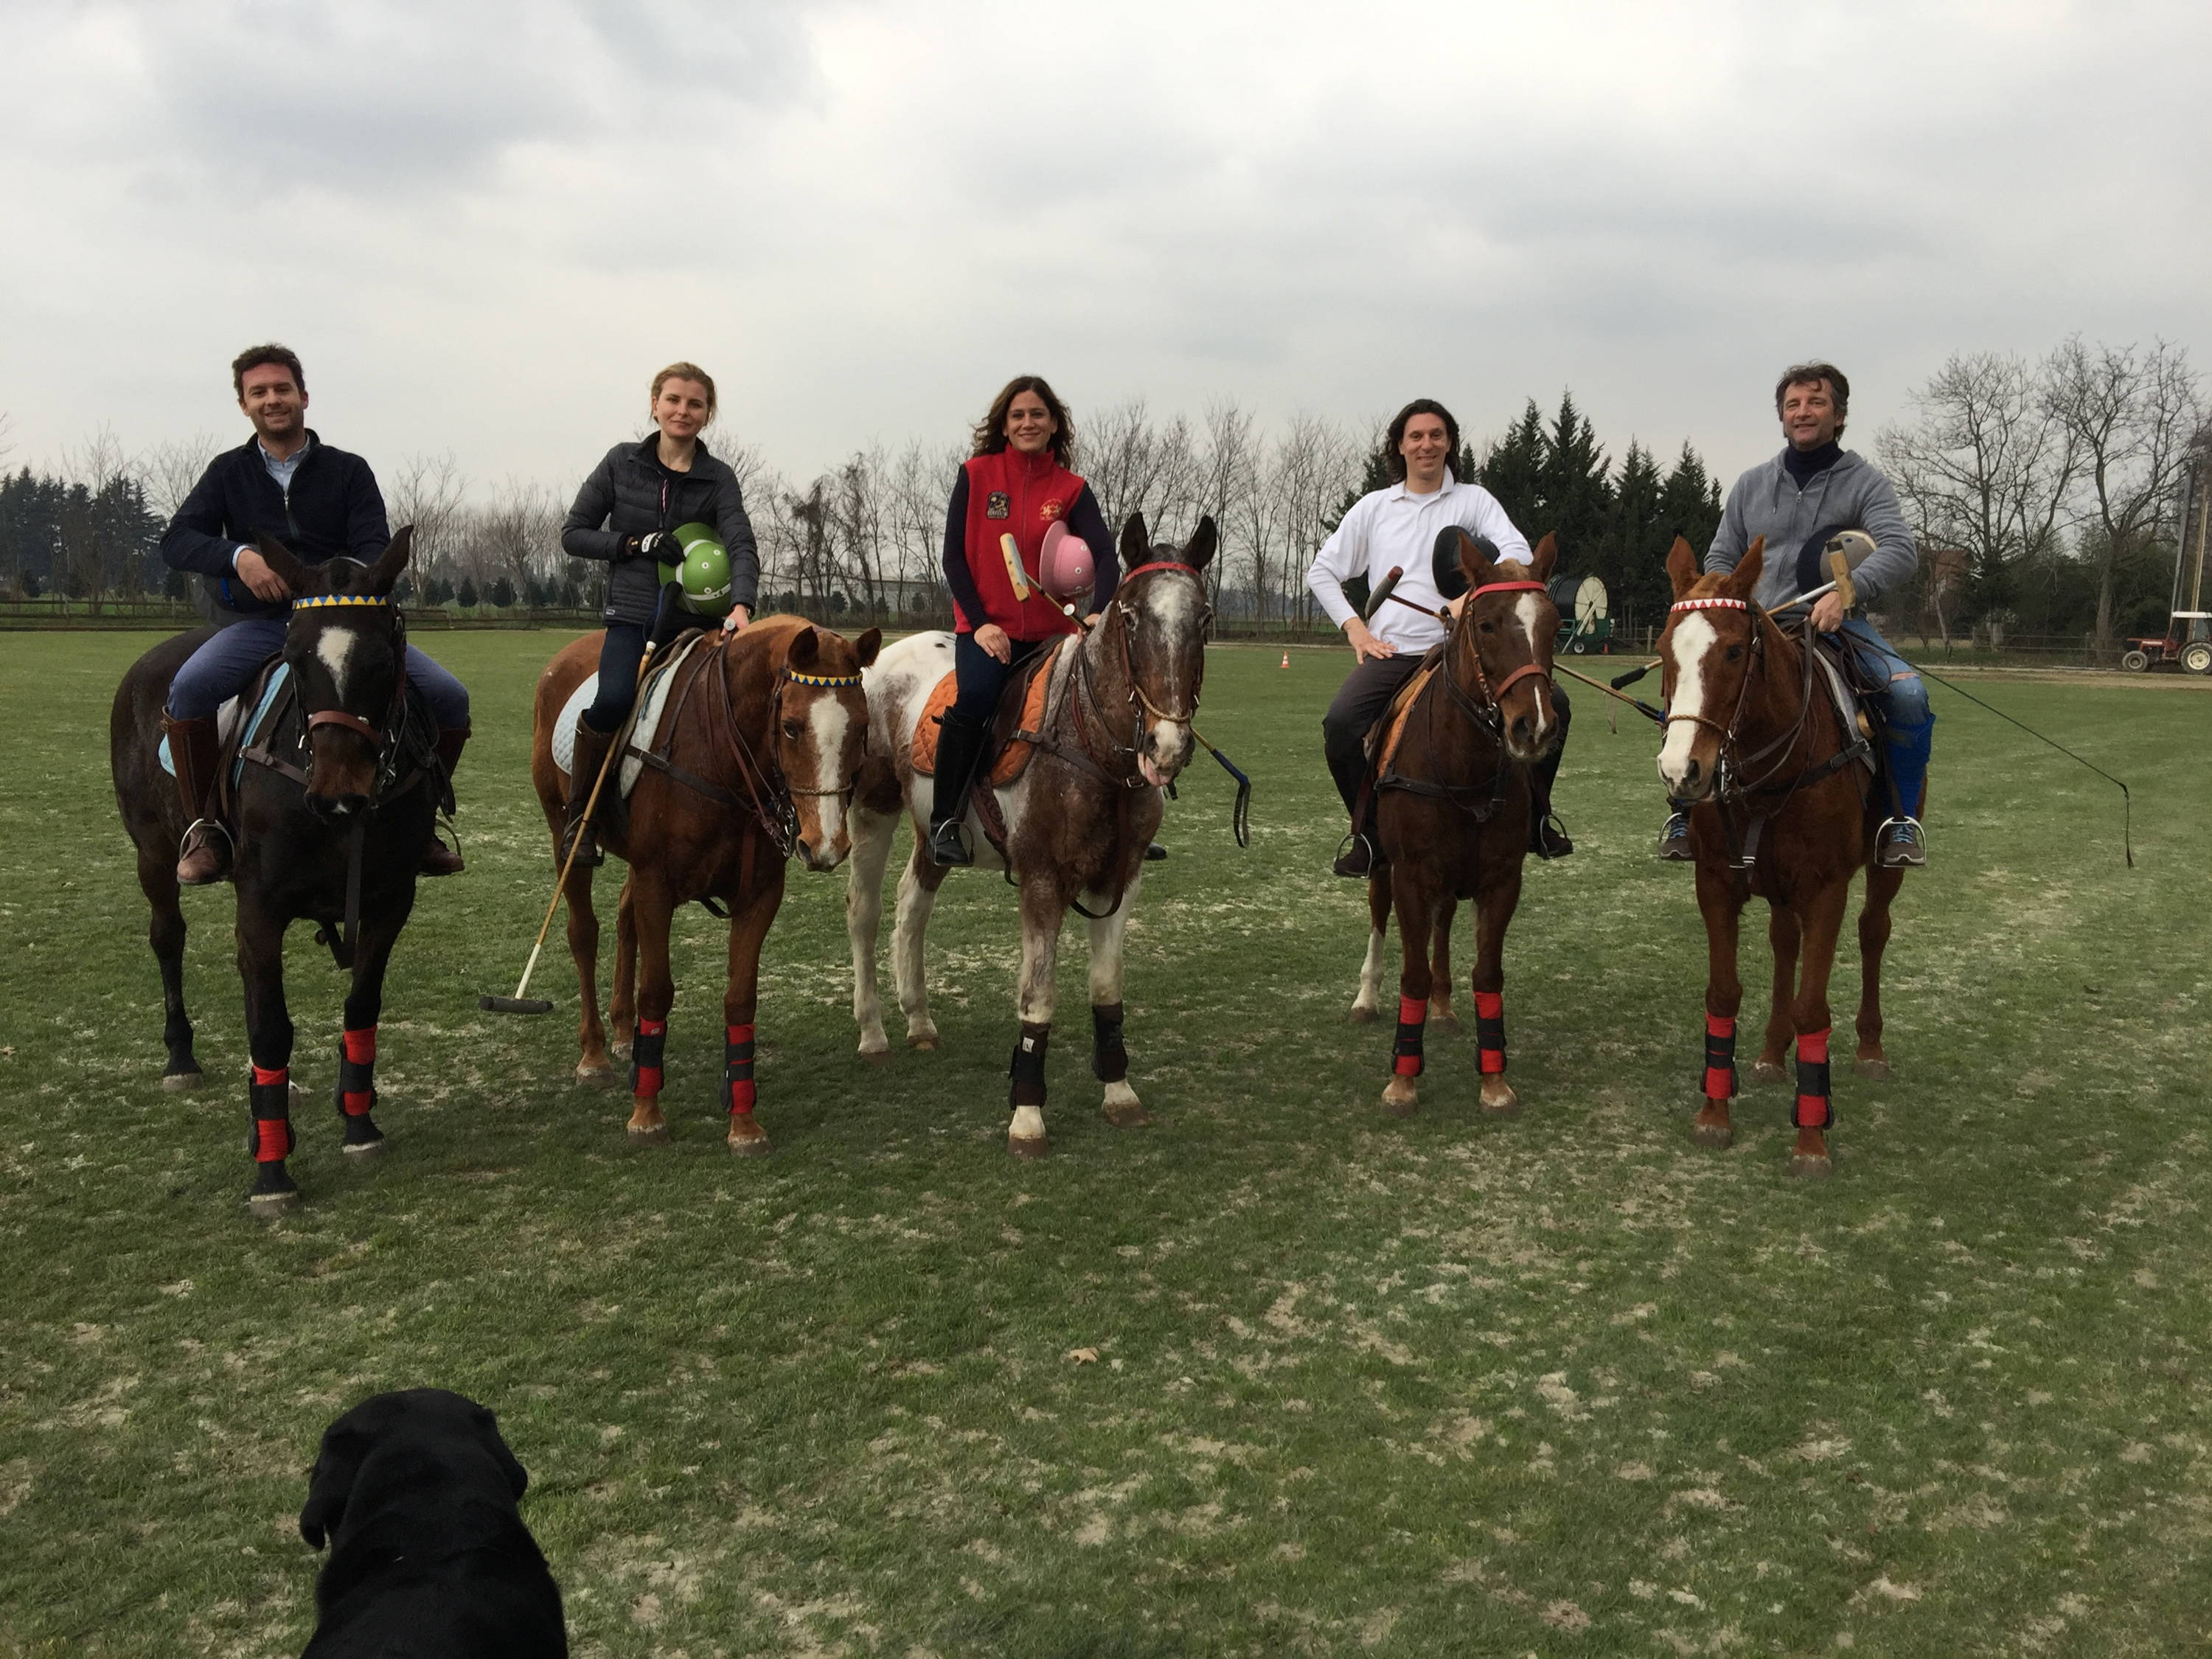 Stick & Ball Founder Elizabeth with the Milan Polo Club for early morning stick & ball